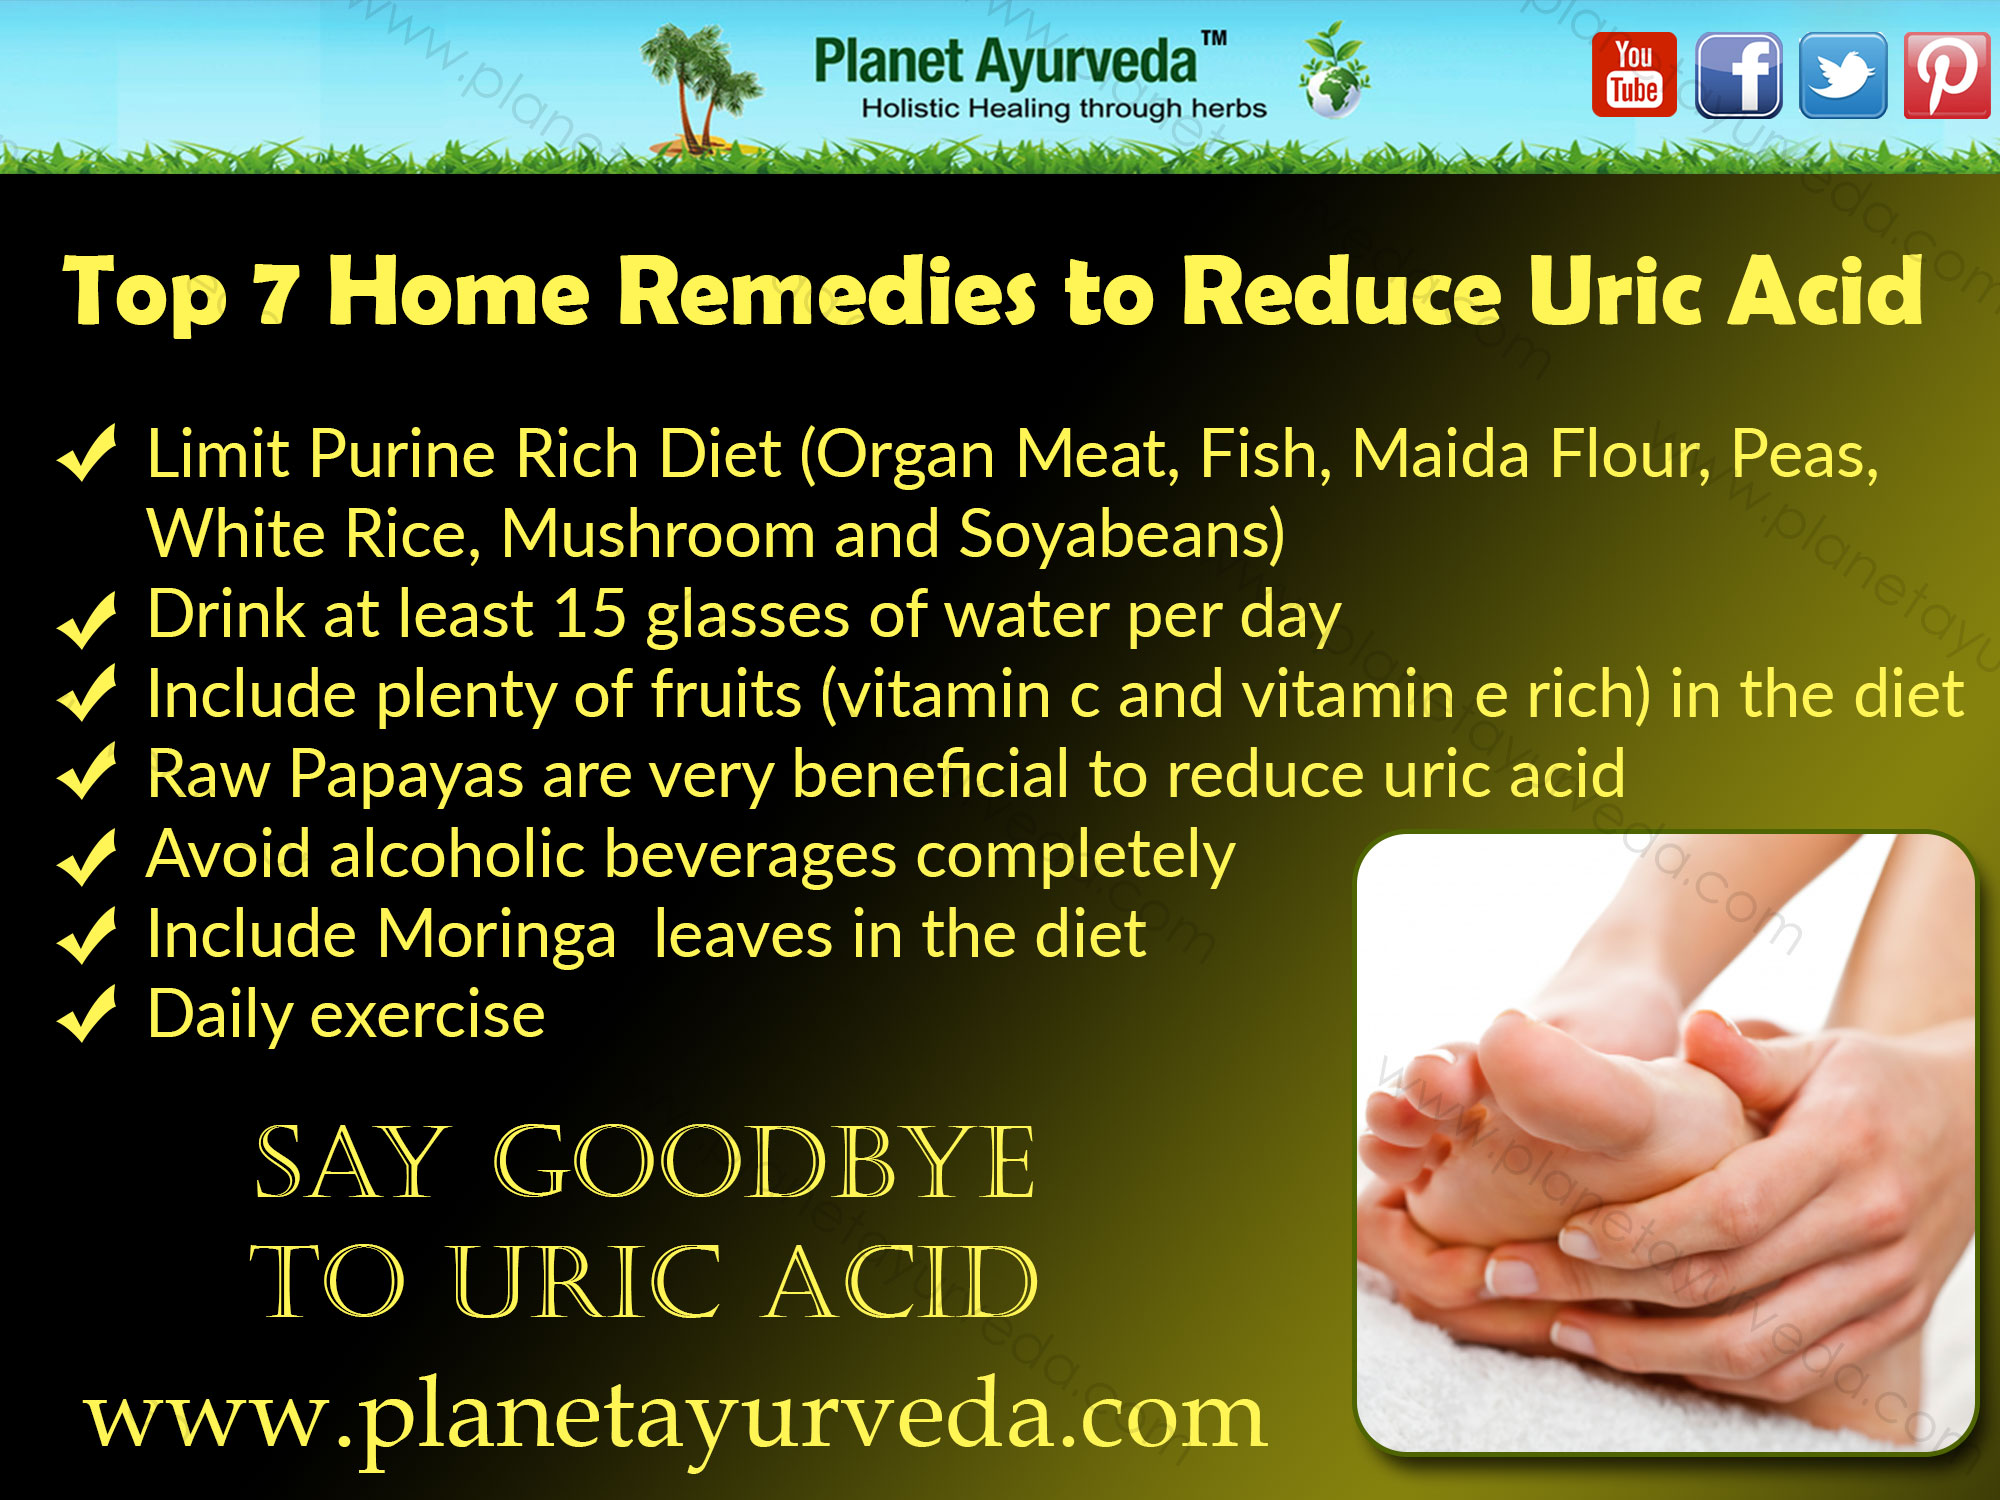 home-remedies-to-reduce-uric-acid